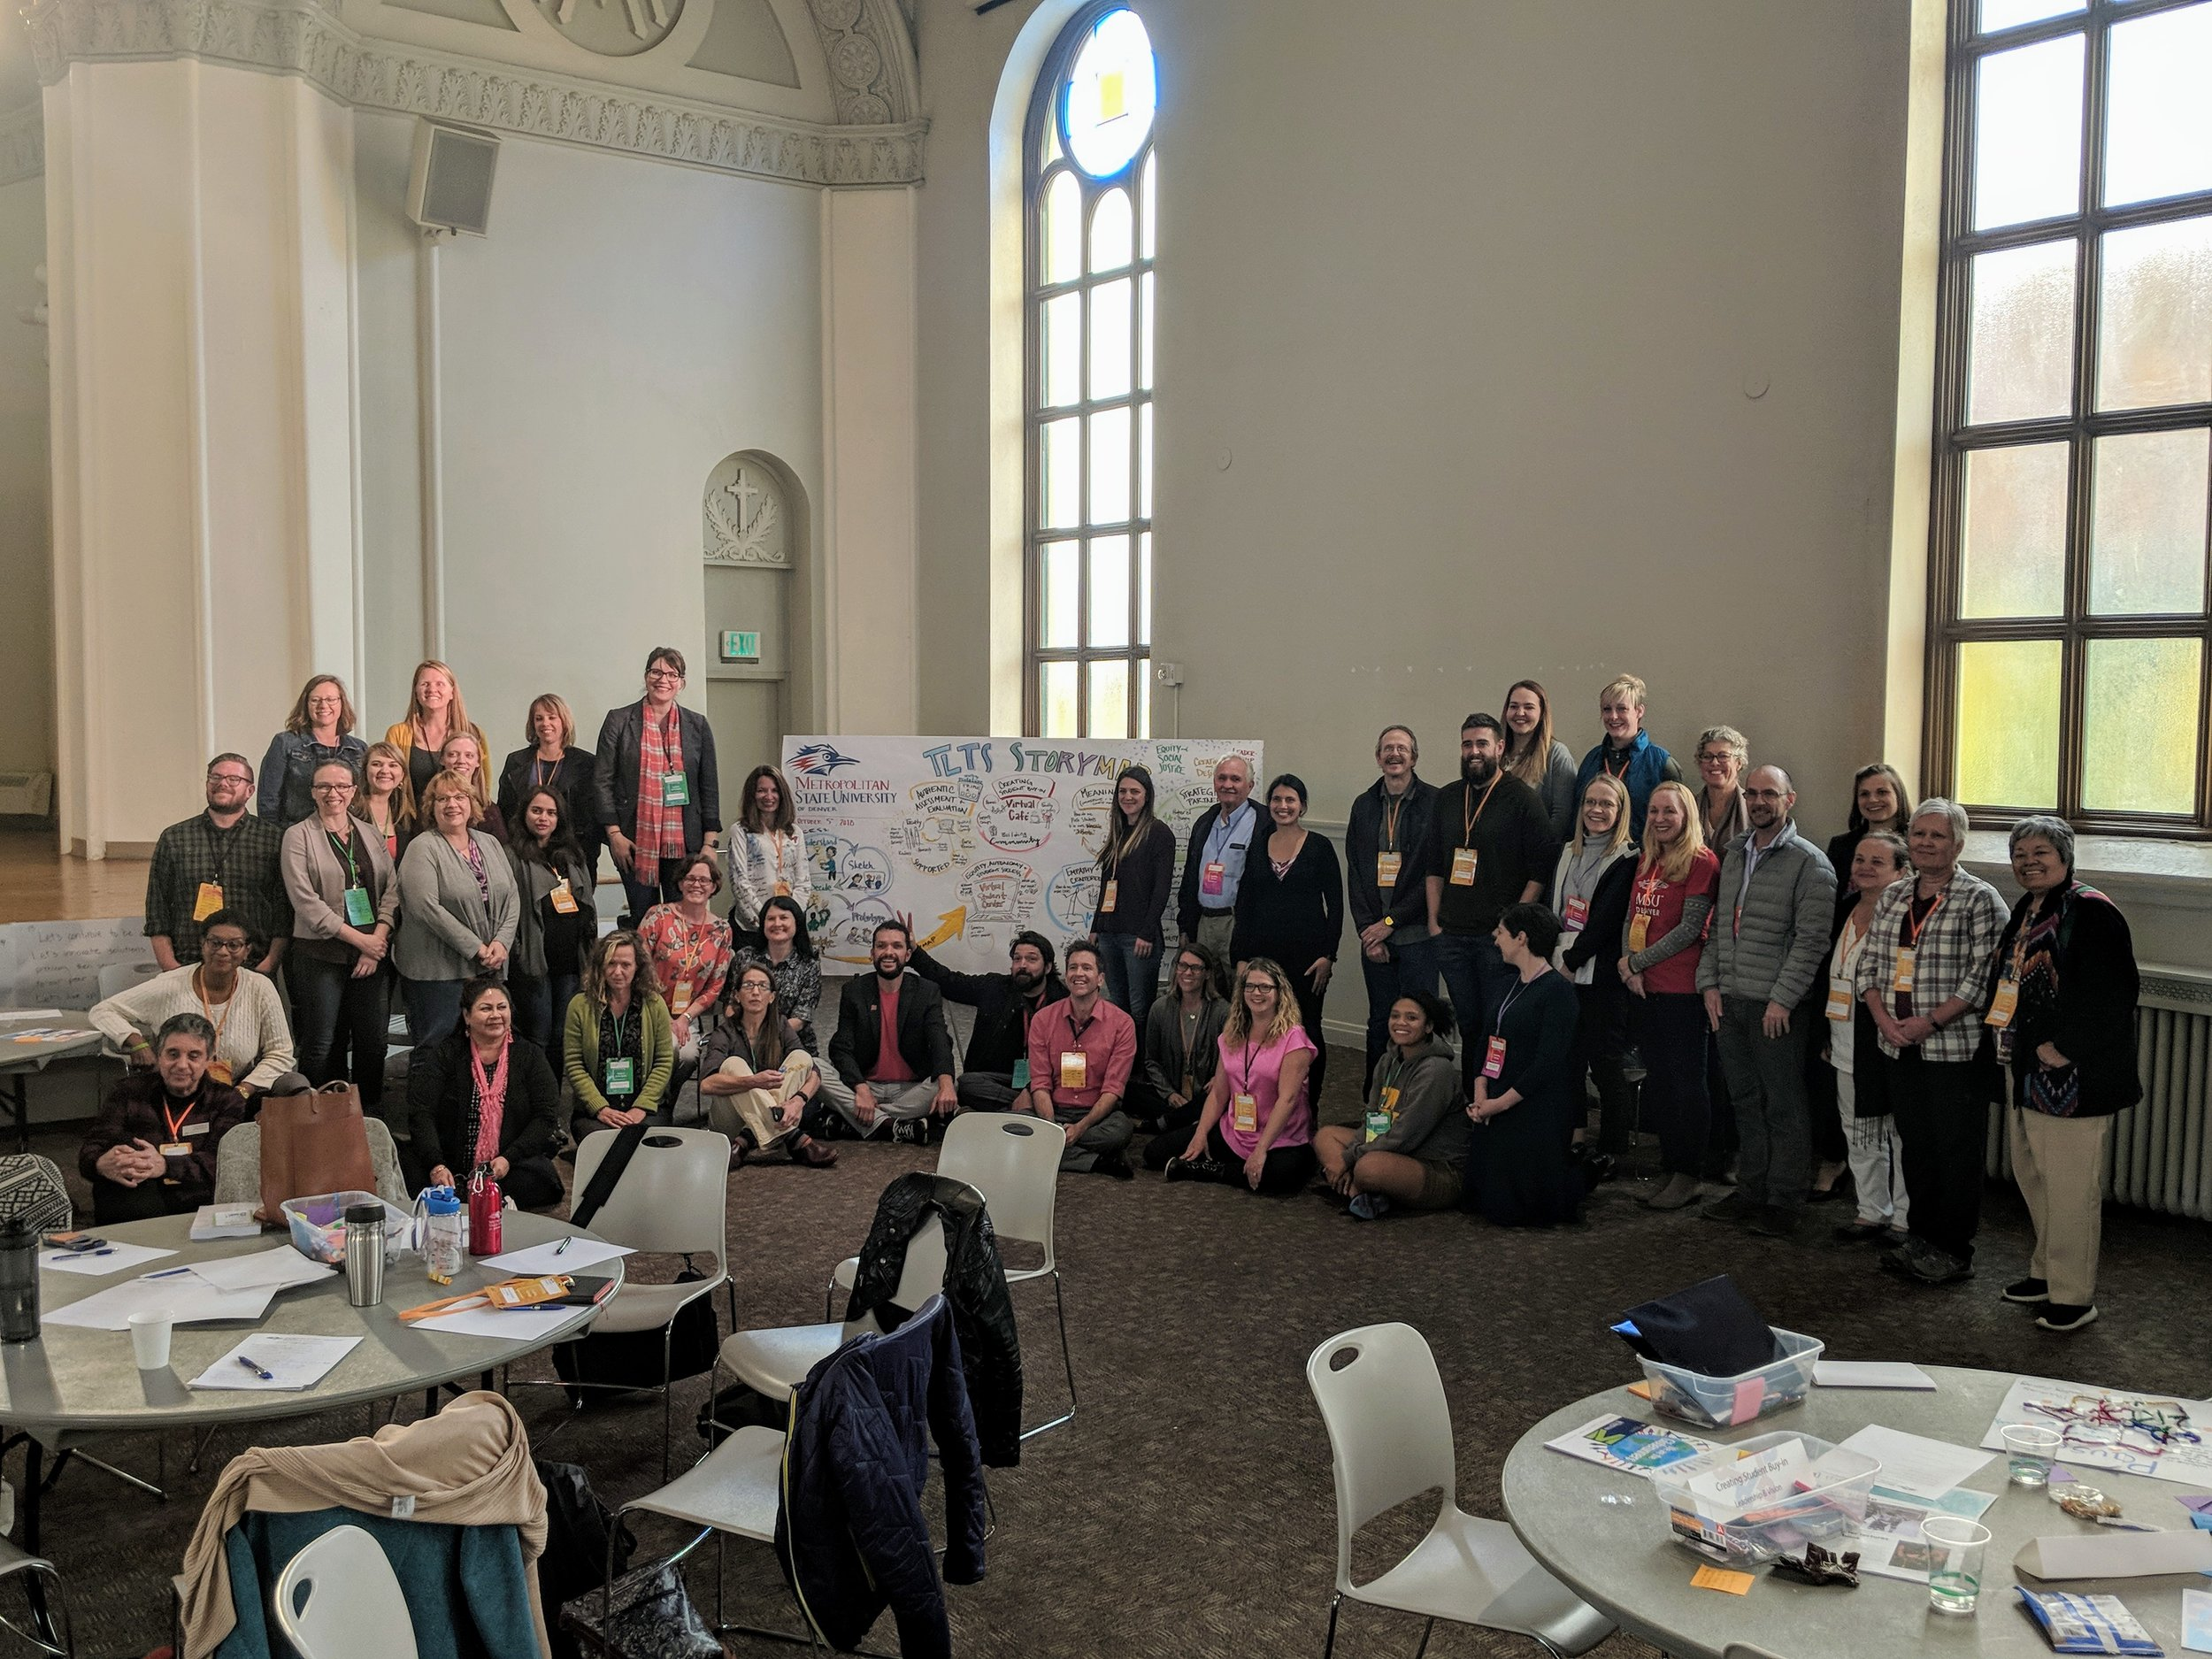 Technology and Higher Education at Metro State:  Creating a Story Map of the outcomes of a Teaching and Learning with Technology Symposium where teams shared prototypes and offered feedback to leverage tech to enhance learning in higher education.